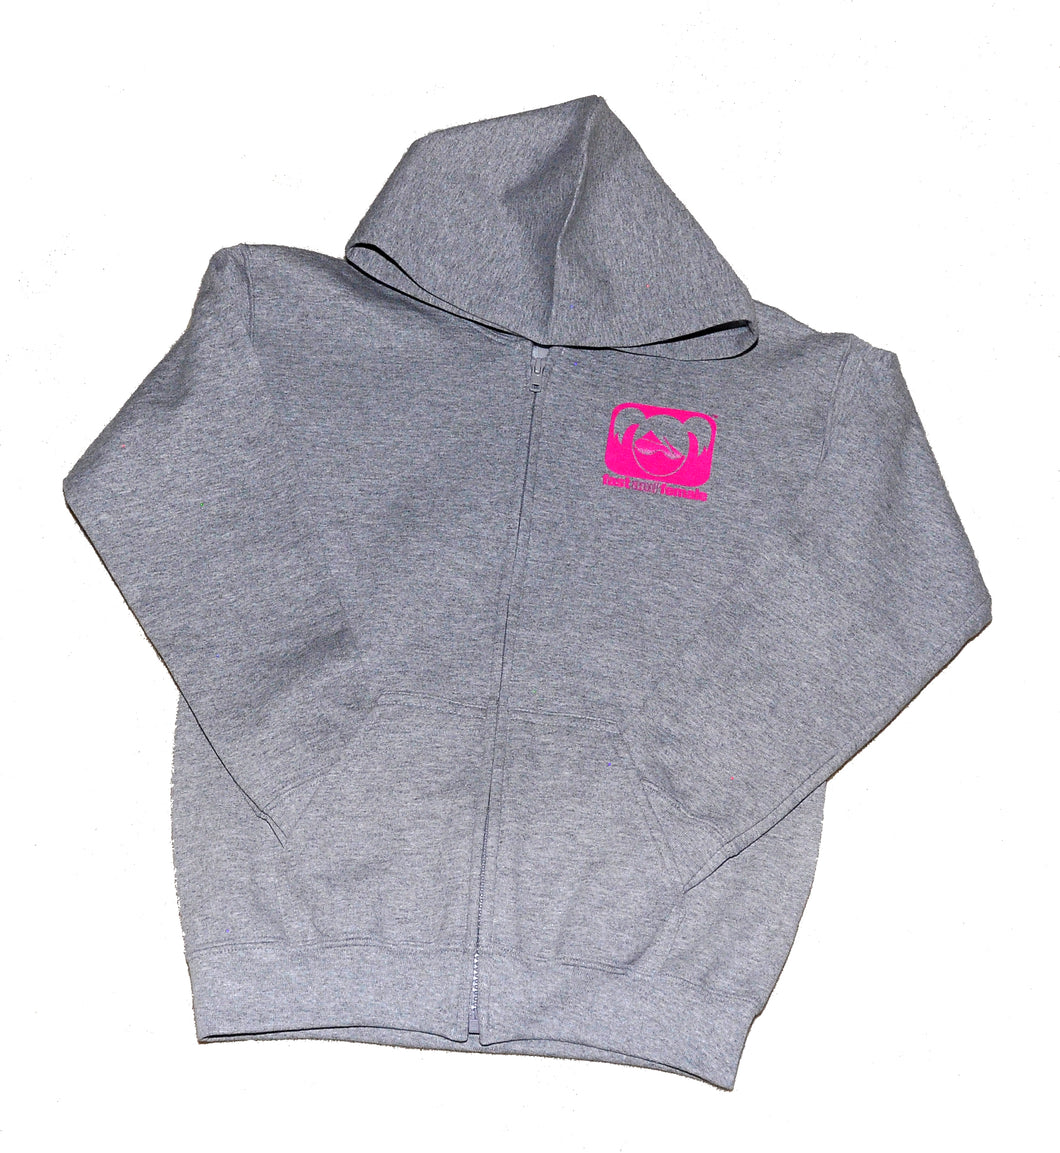 Fast & Female Youth Hoodie